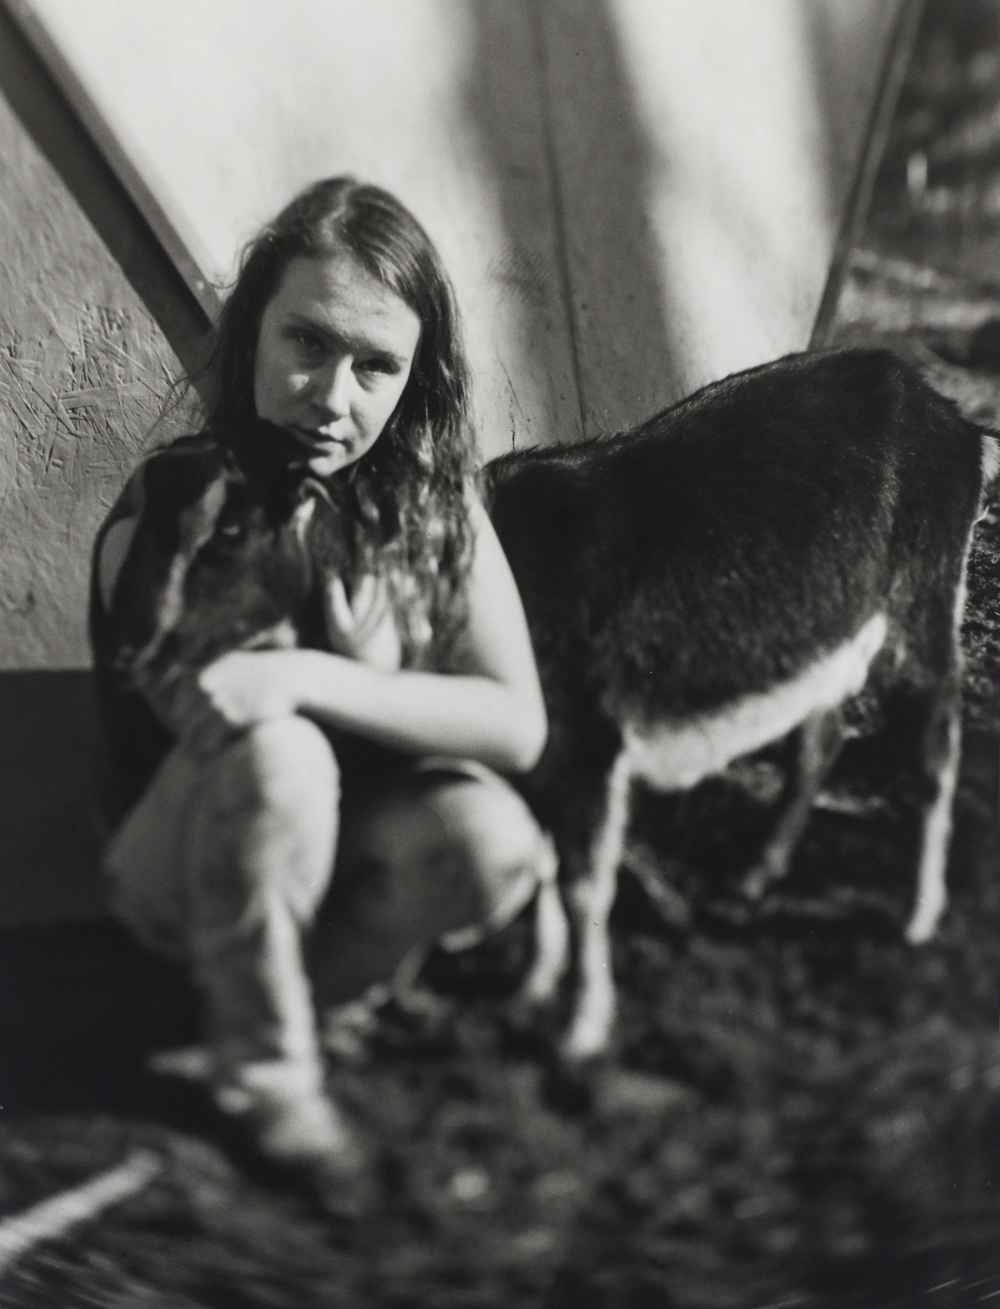 Celia and her goat